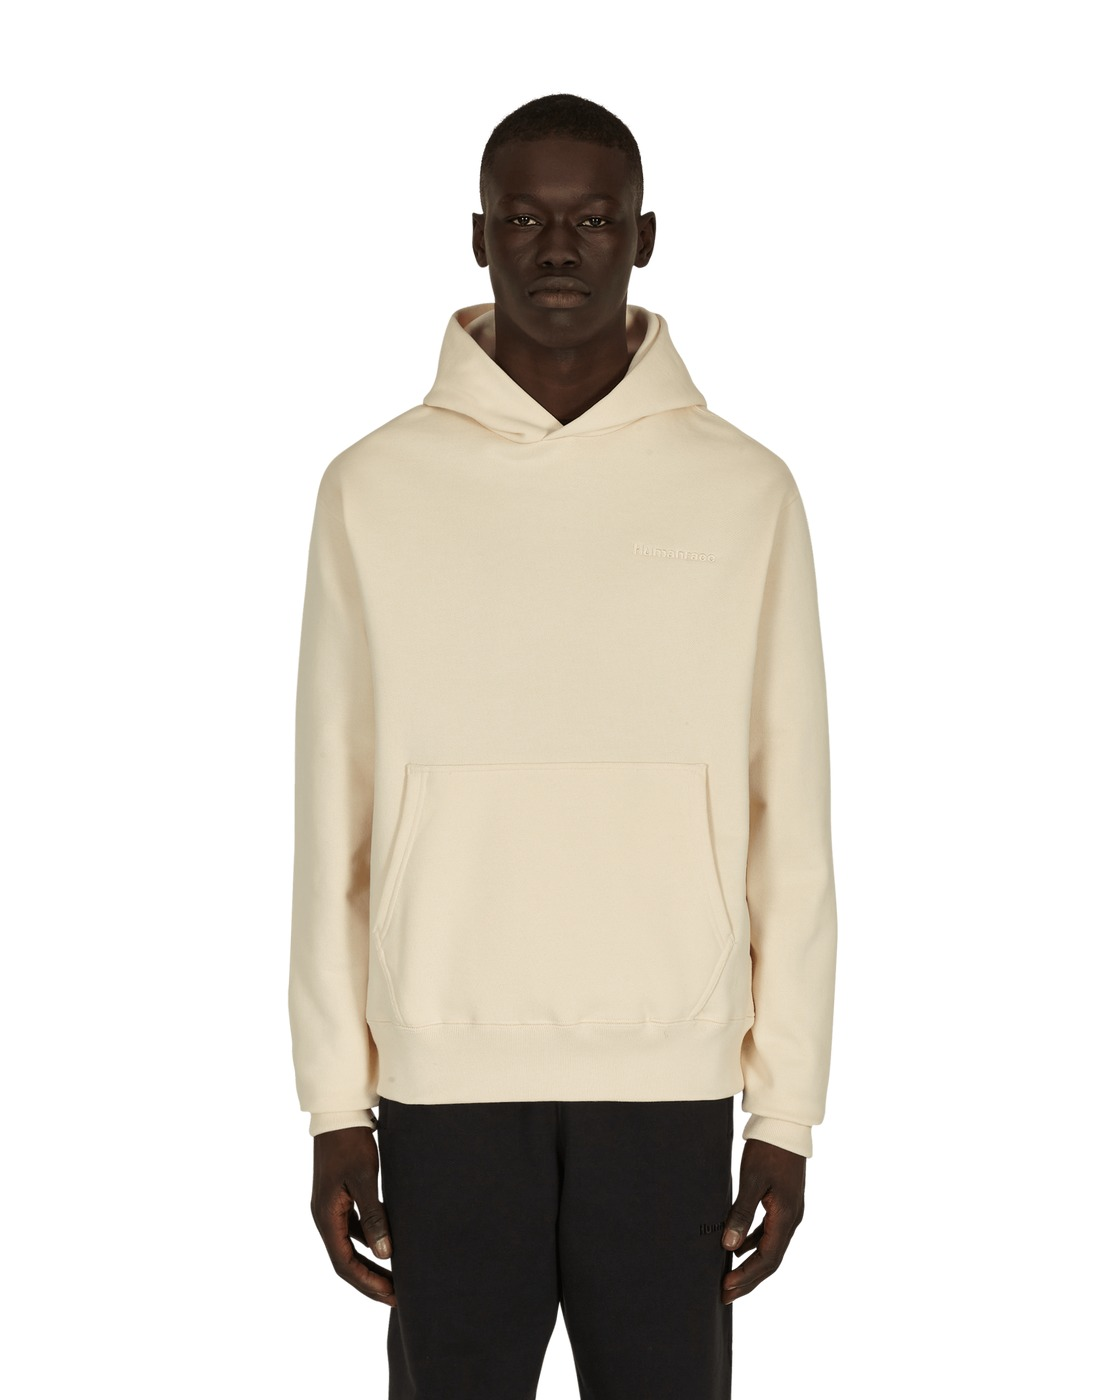 Photo: Adidas Originals Pharrell Williams Basics Hooded Sweatshirt Ecru Tint